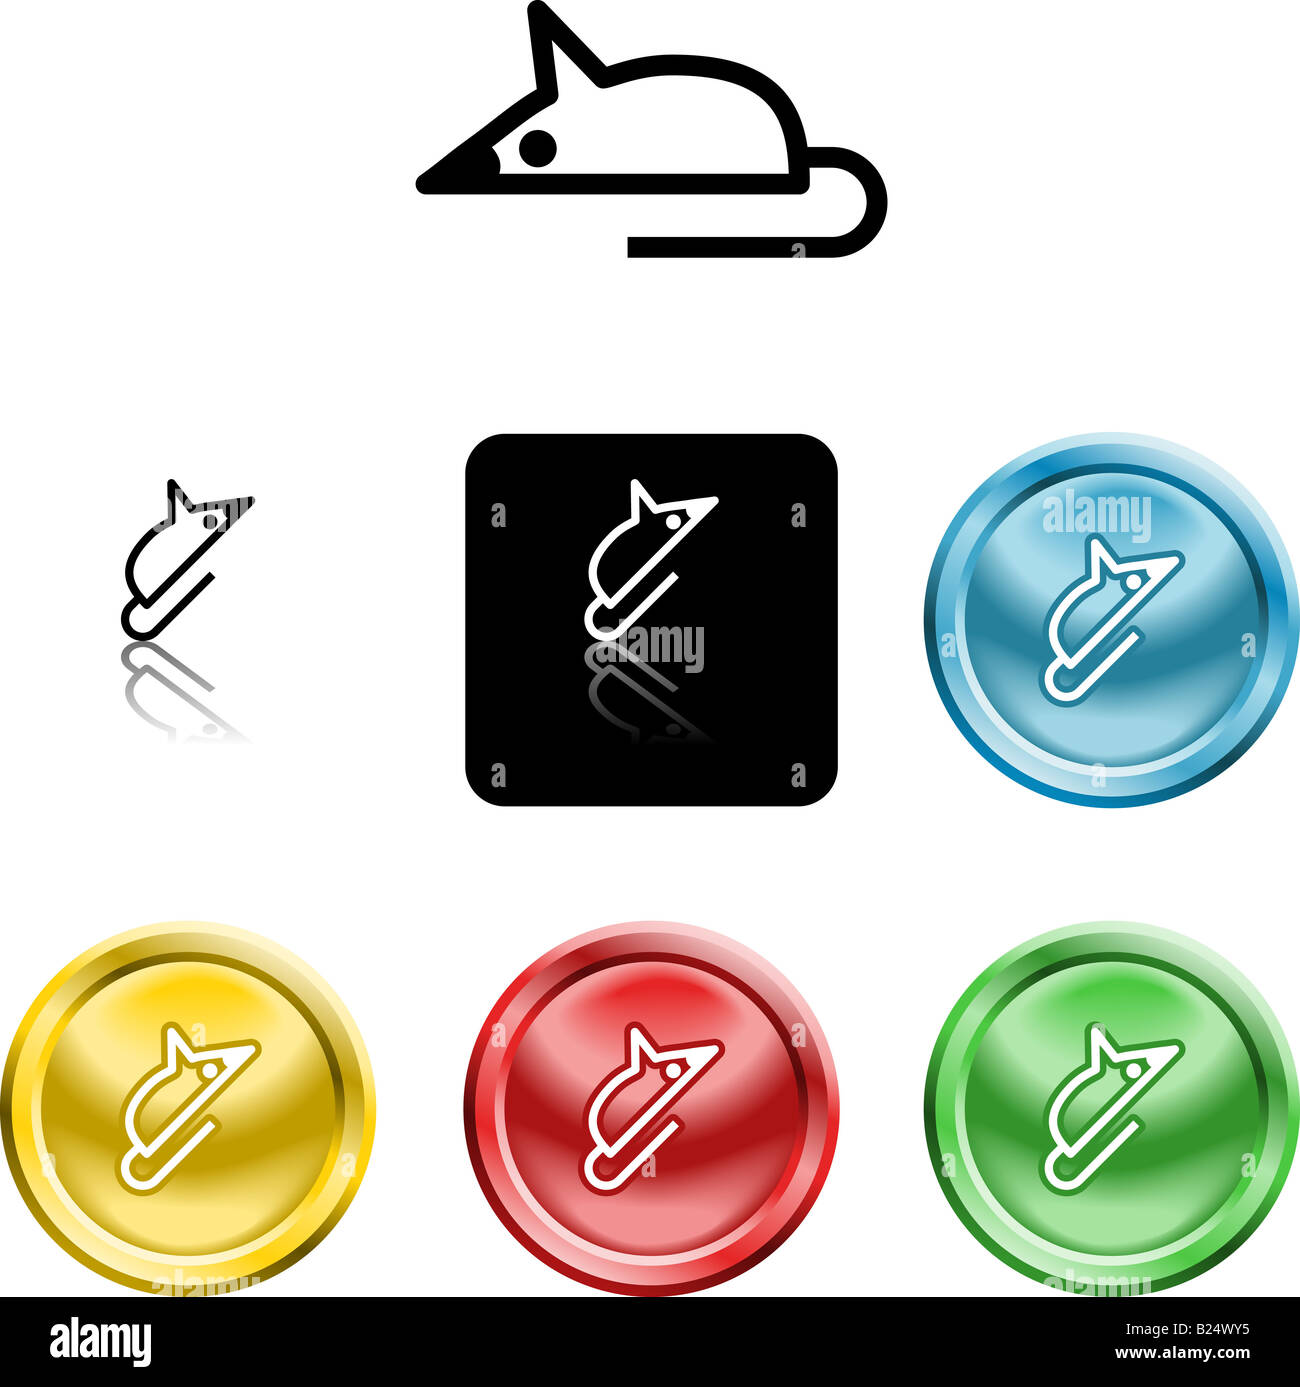 Several versions of an icon symbol of a stylised mouse representing a computer mouse - Stock Image